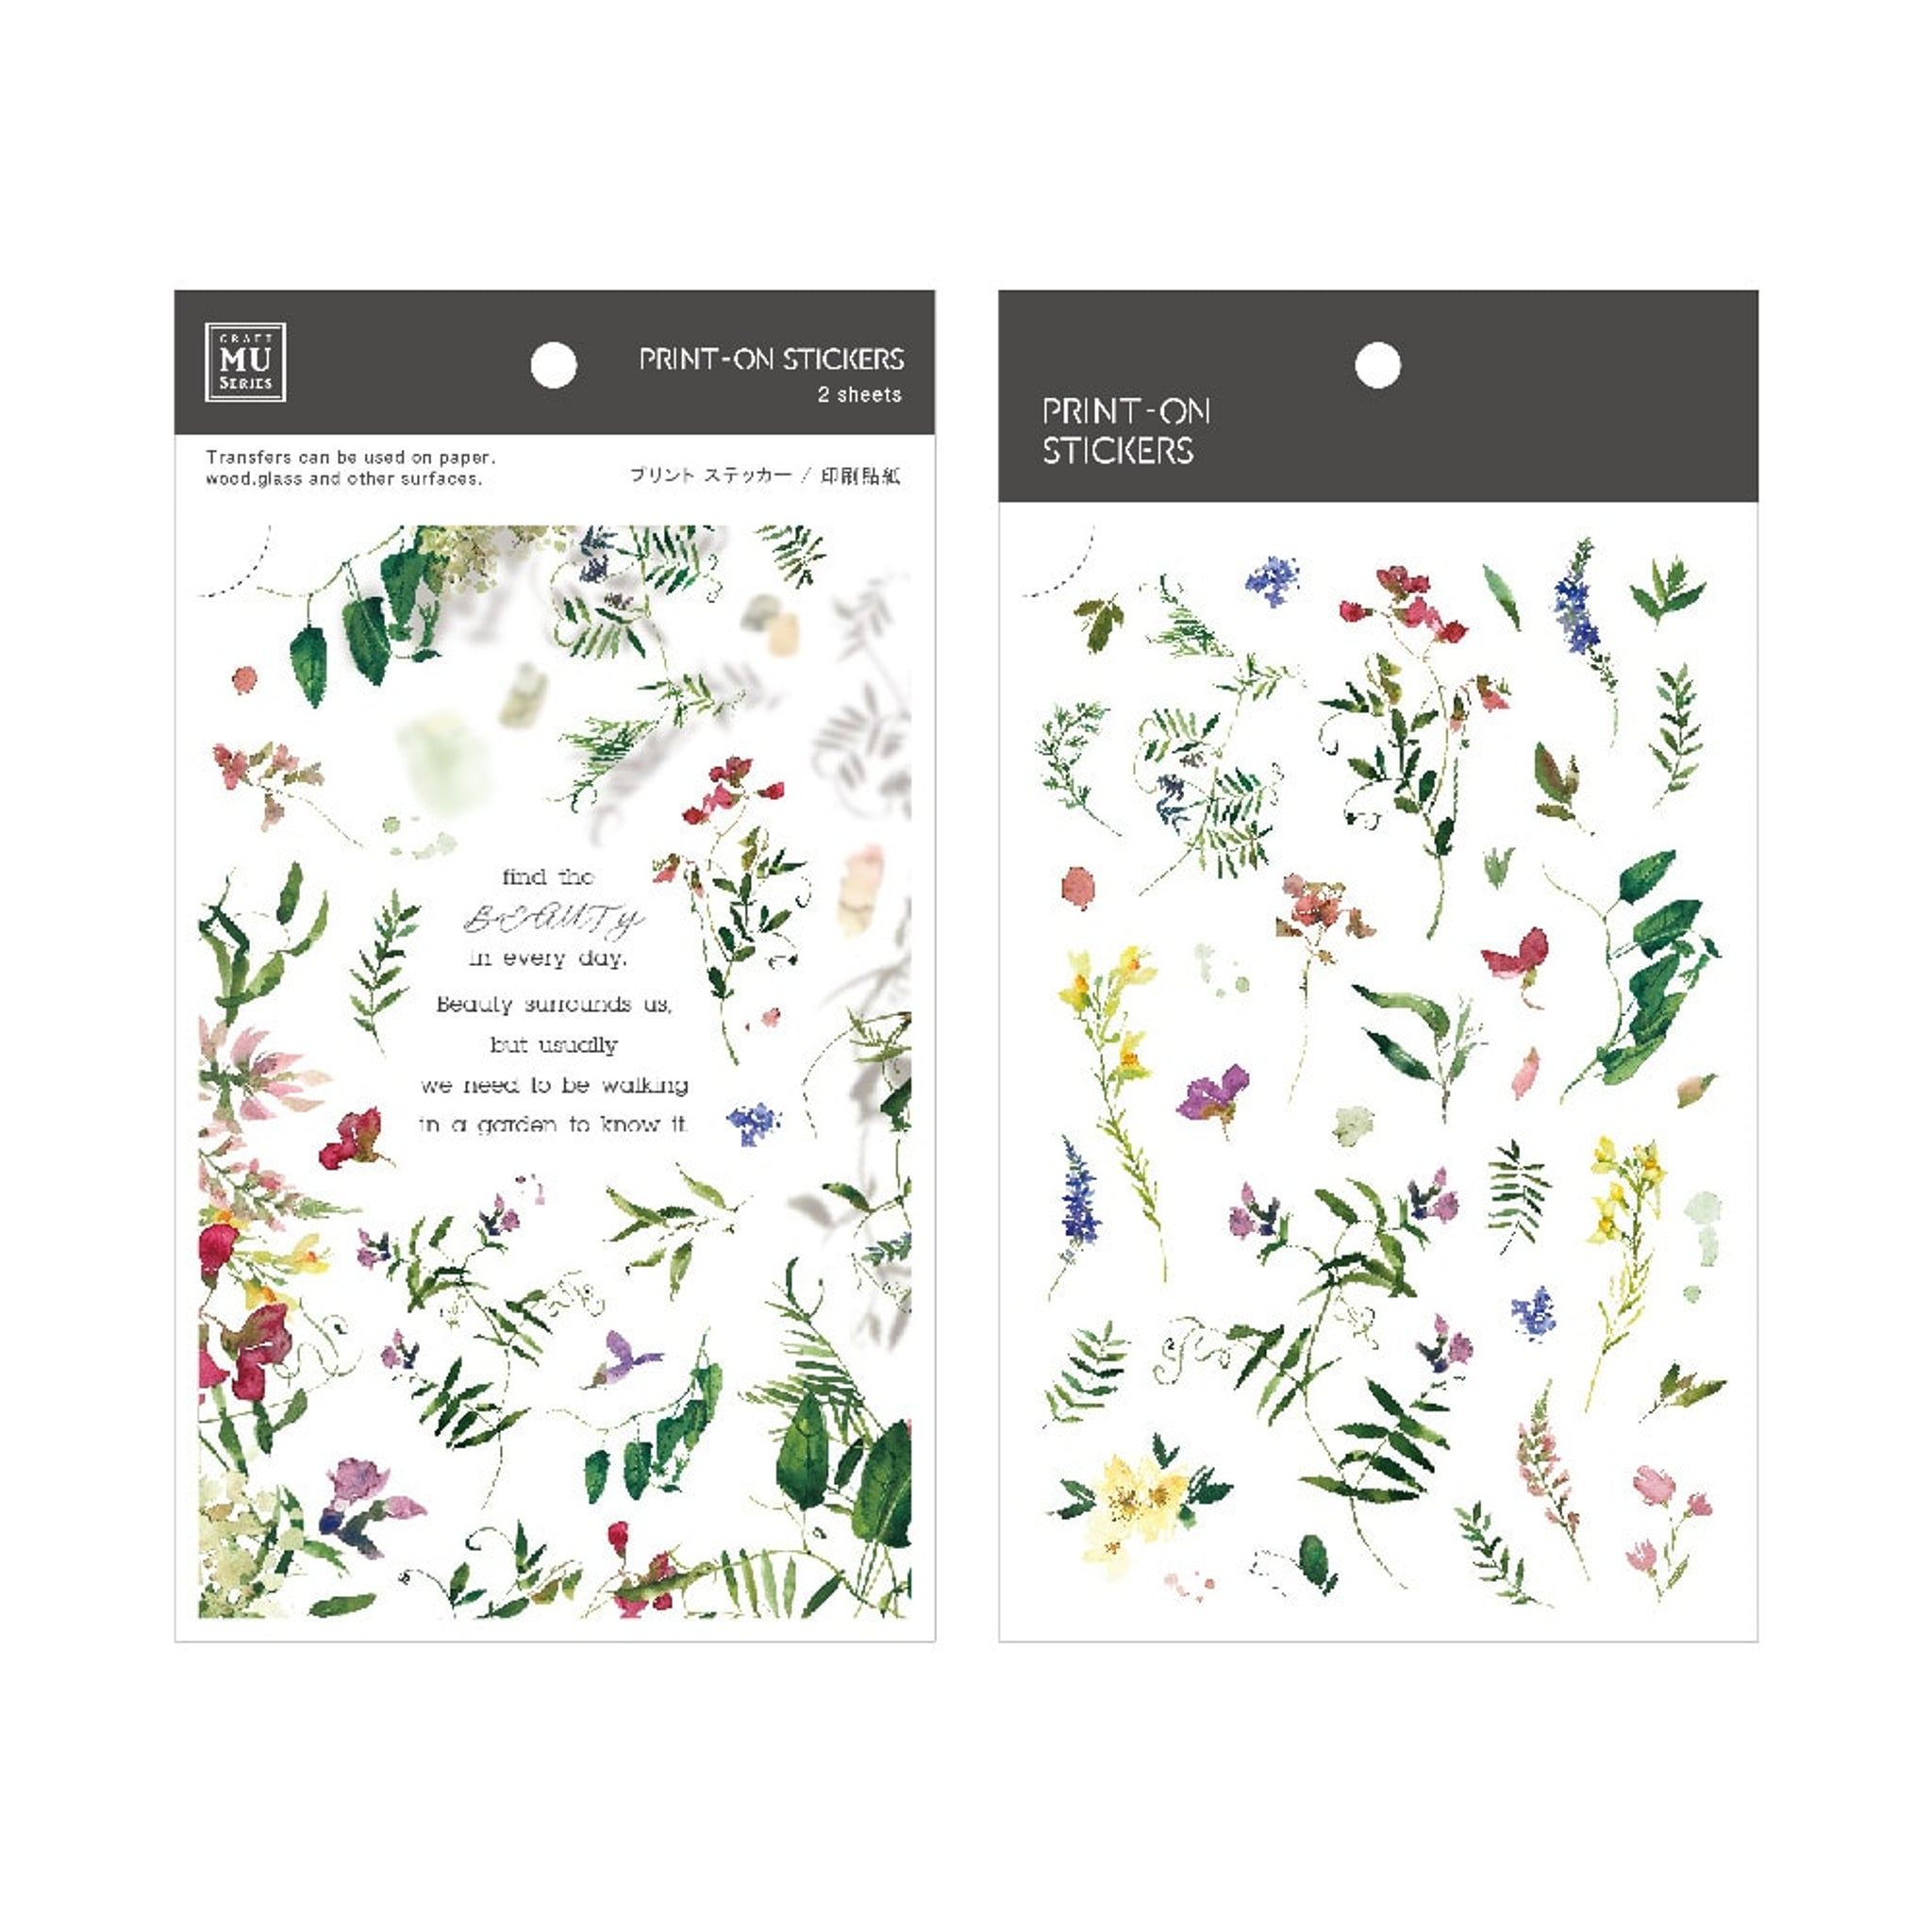 MU Craft Print-On Sticker Wild Flowers 145